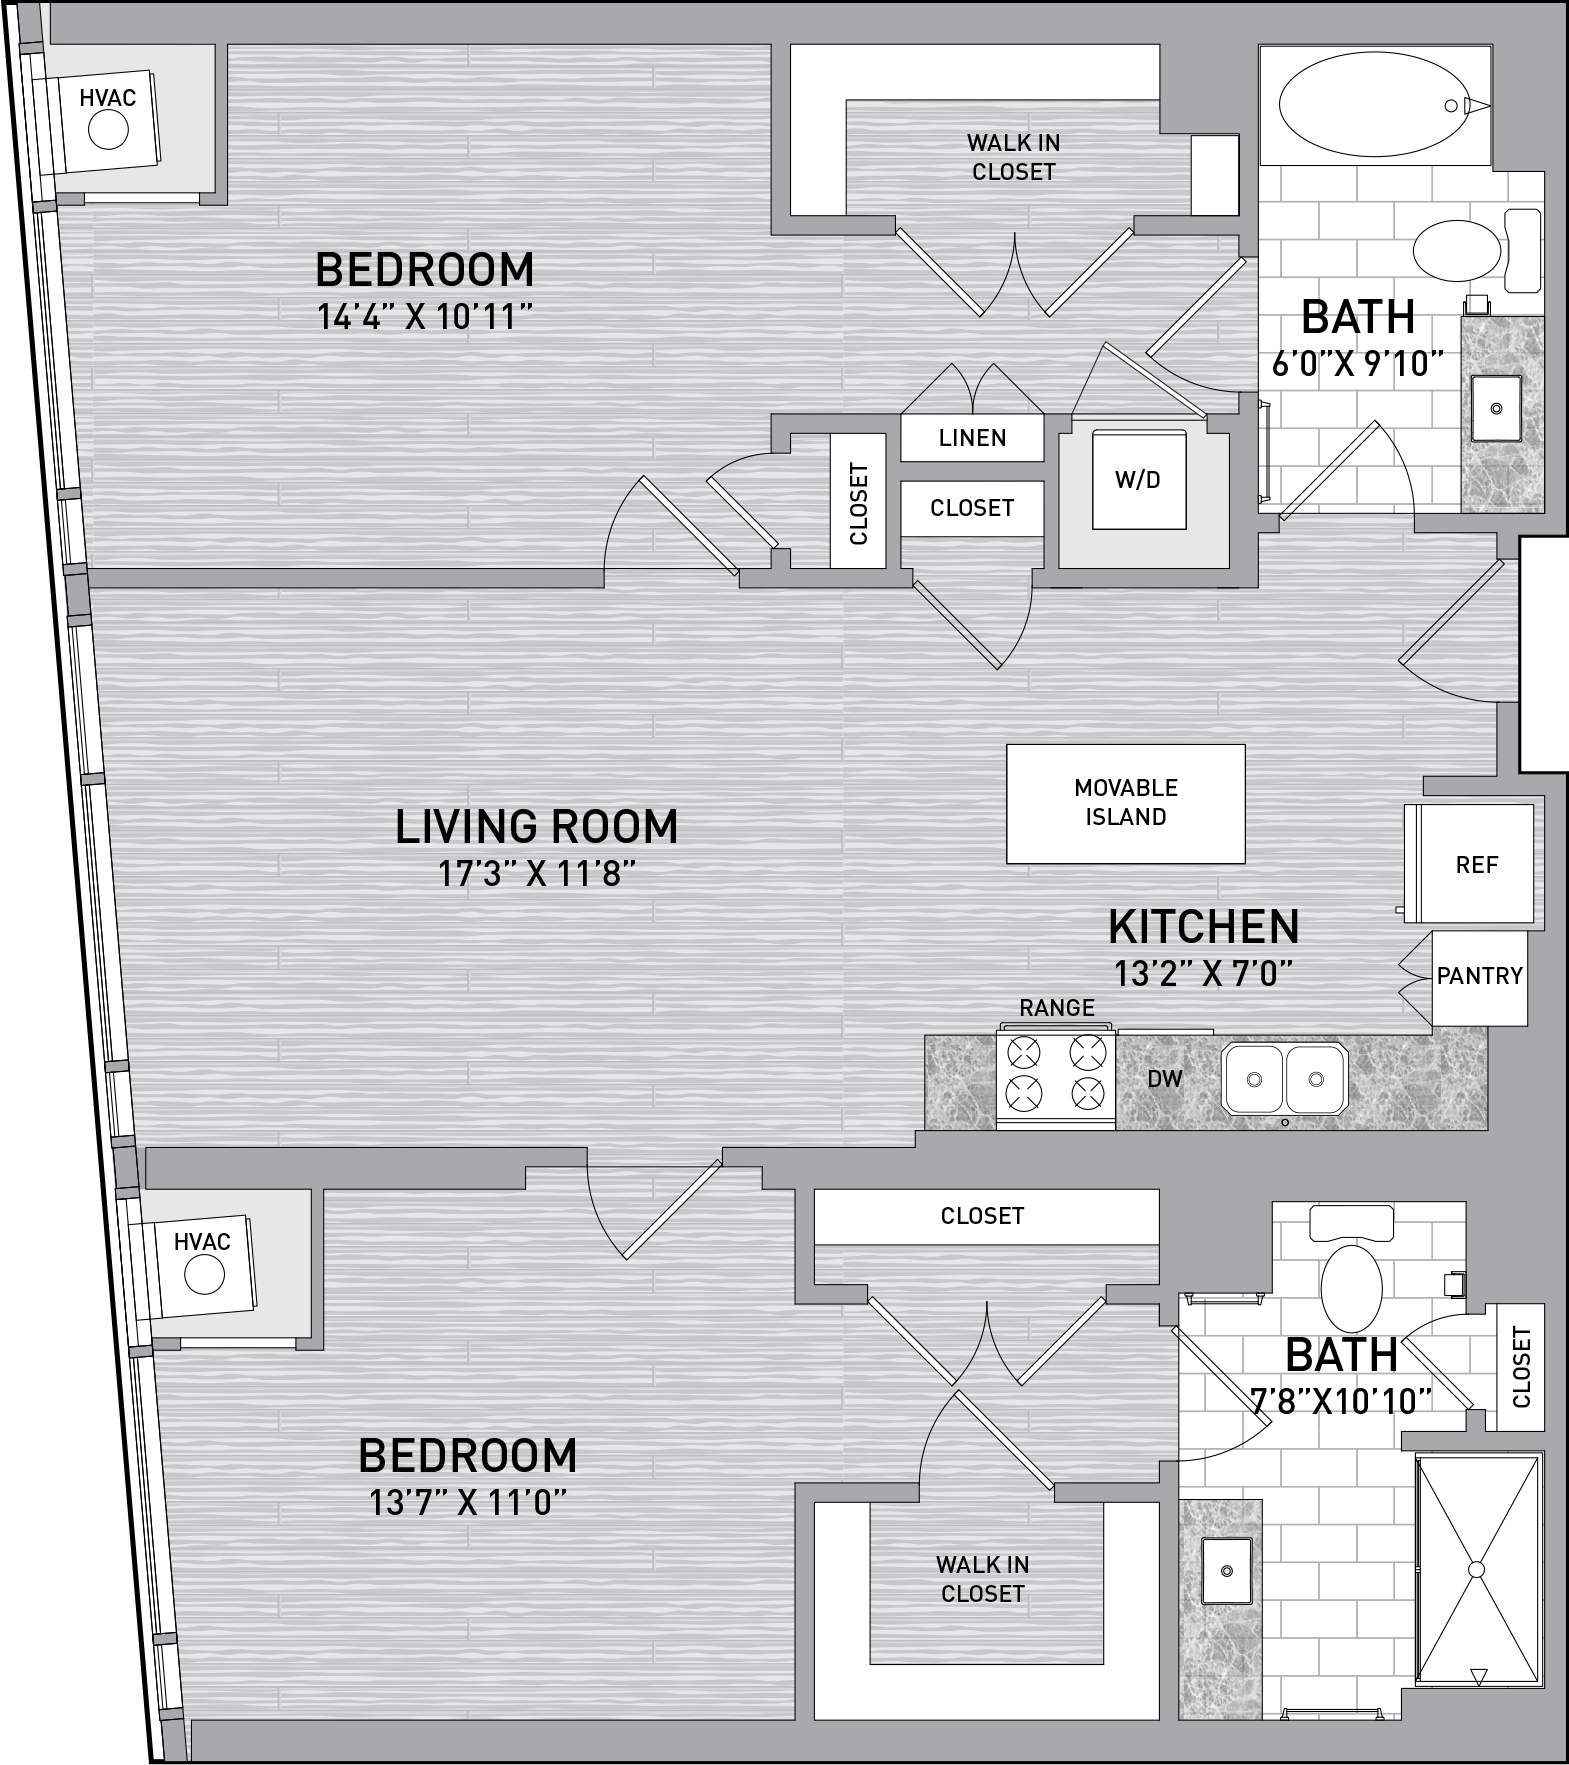 floorplan image of unit id 322